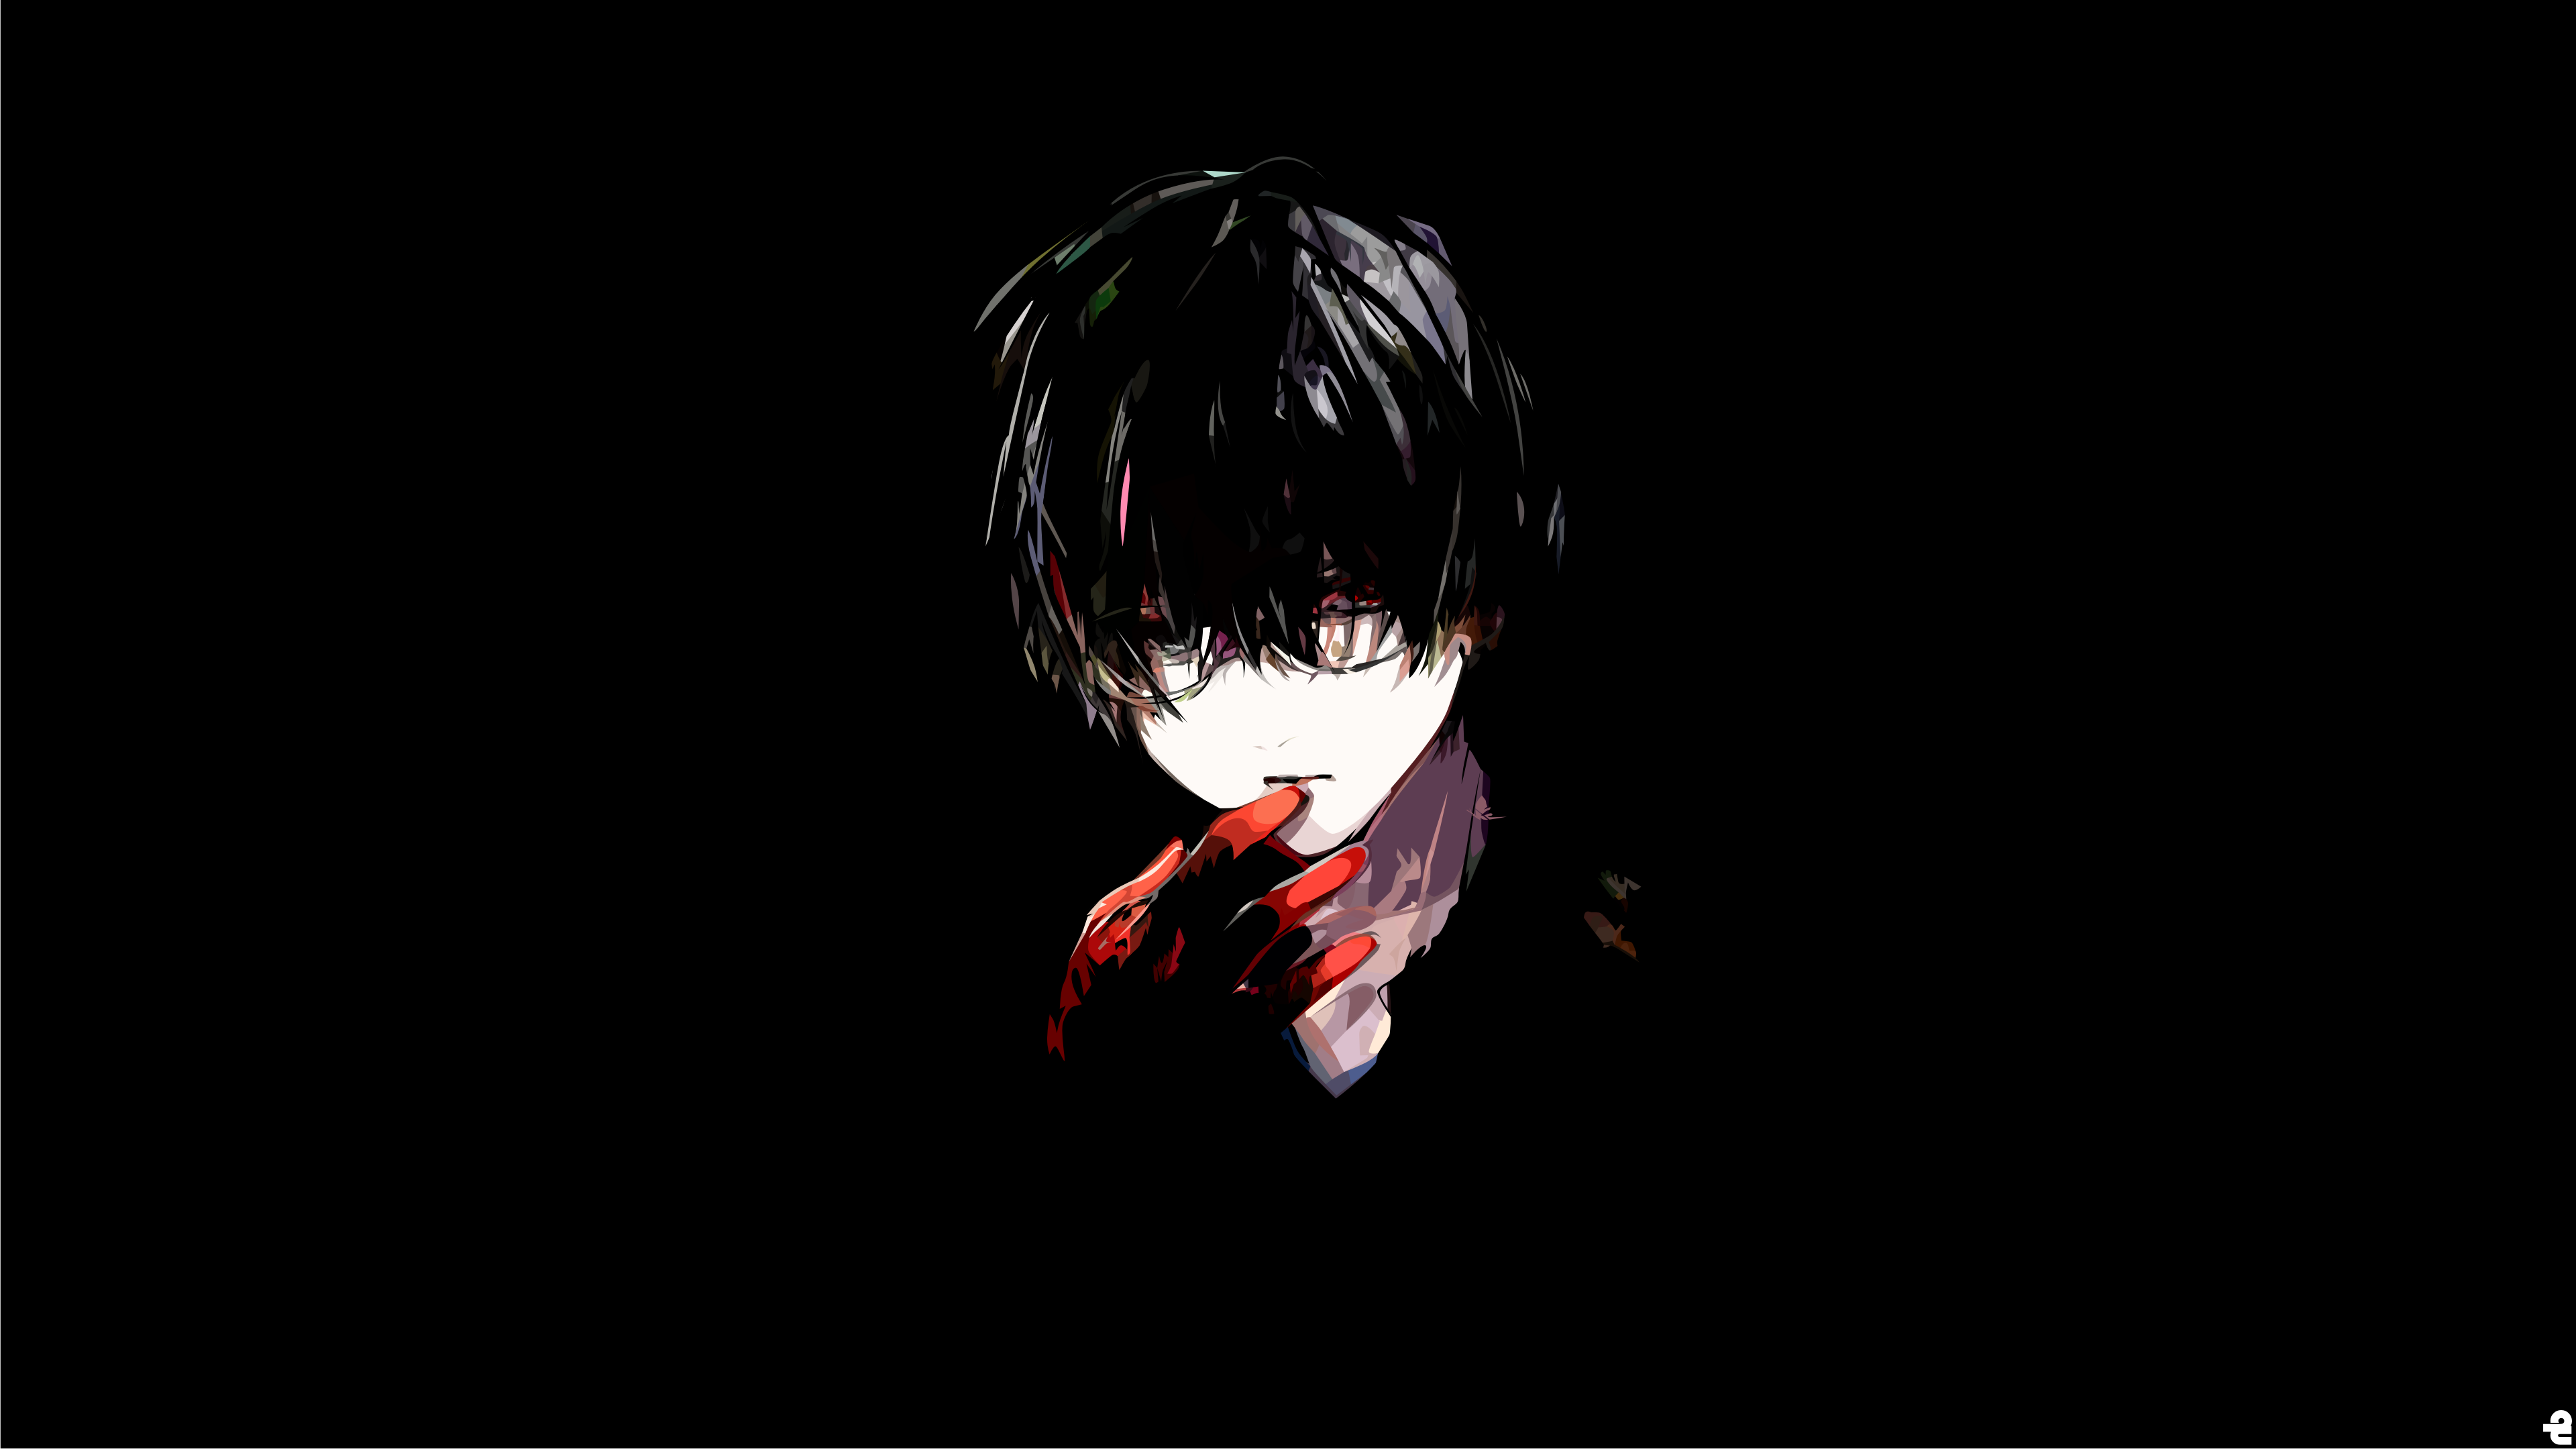 Tokyo Ghoul 4k Ultra Hd Wallpaper Background Image 3840x2160 Id 930313 Wallpaper Abyss